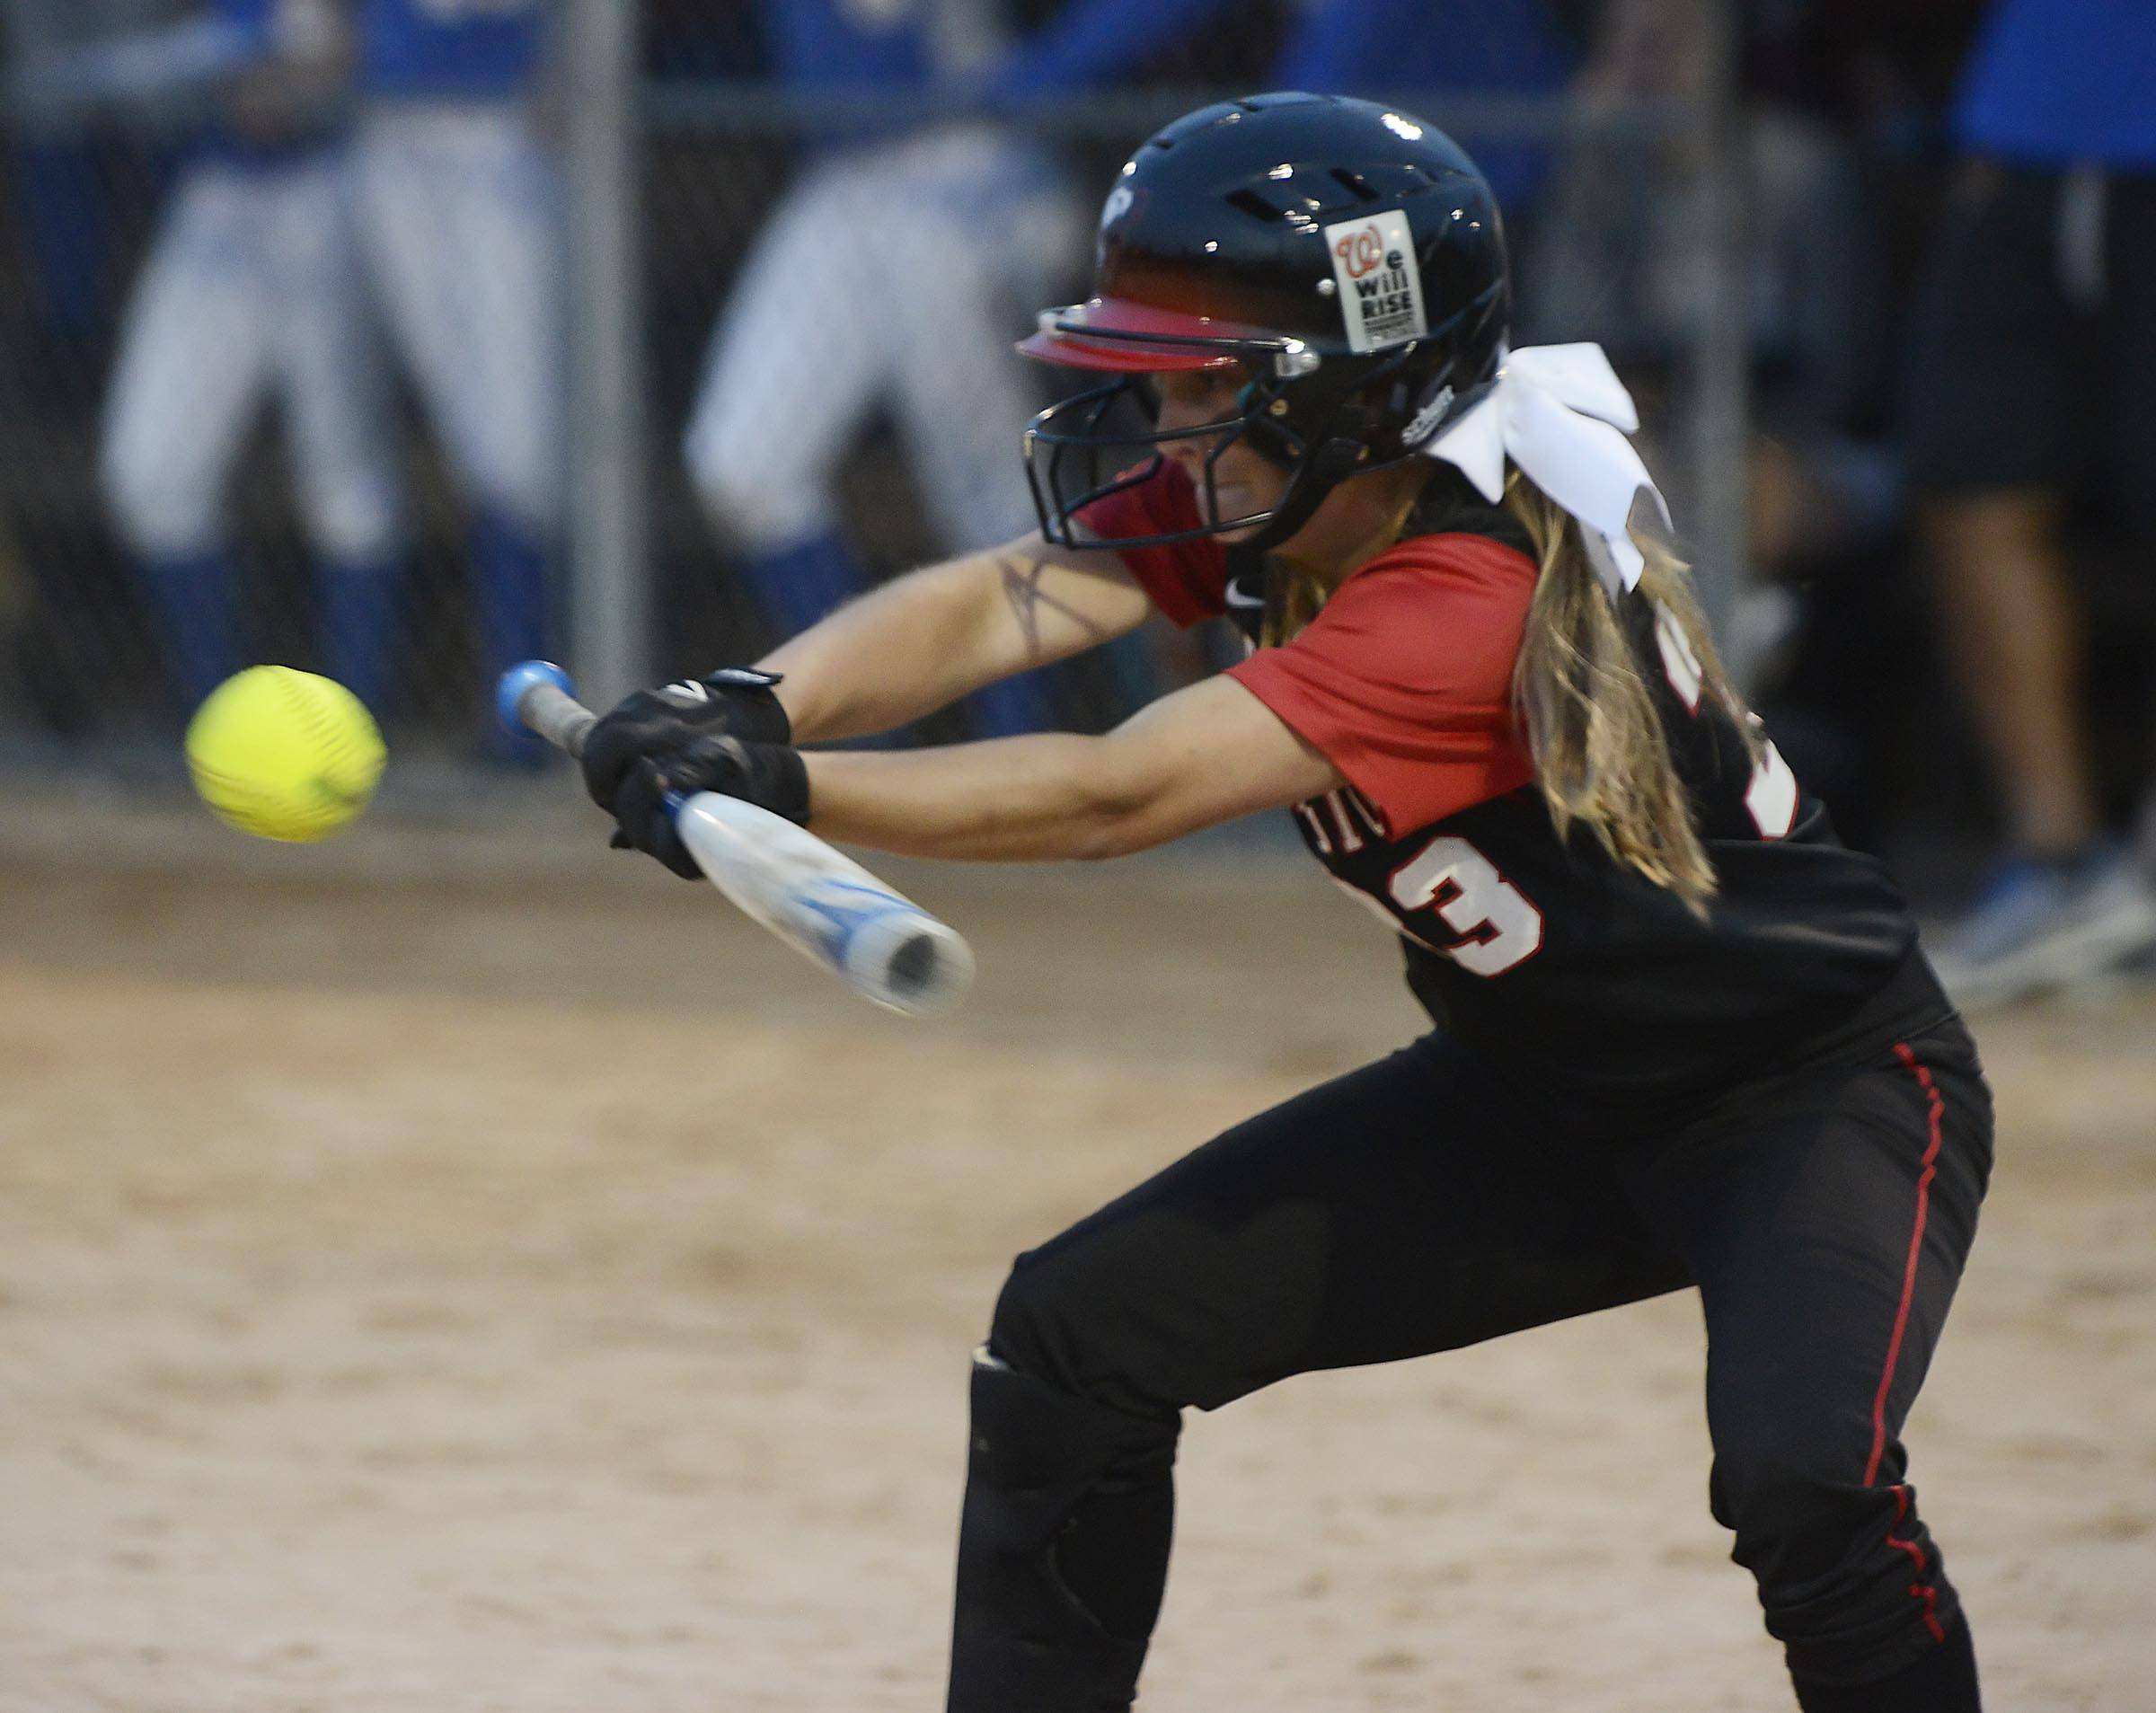 Warren's Barrington's Carly Kordich lays down a bunt to advance a runner in the Class 4A Barrington supersectional Monday.